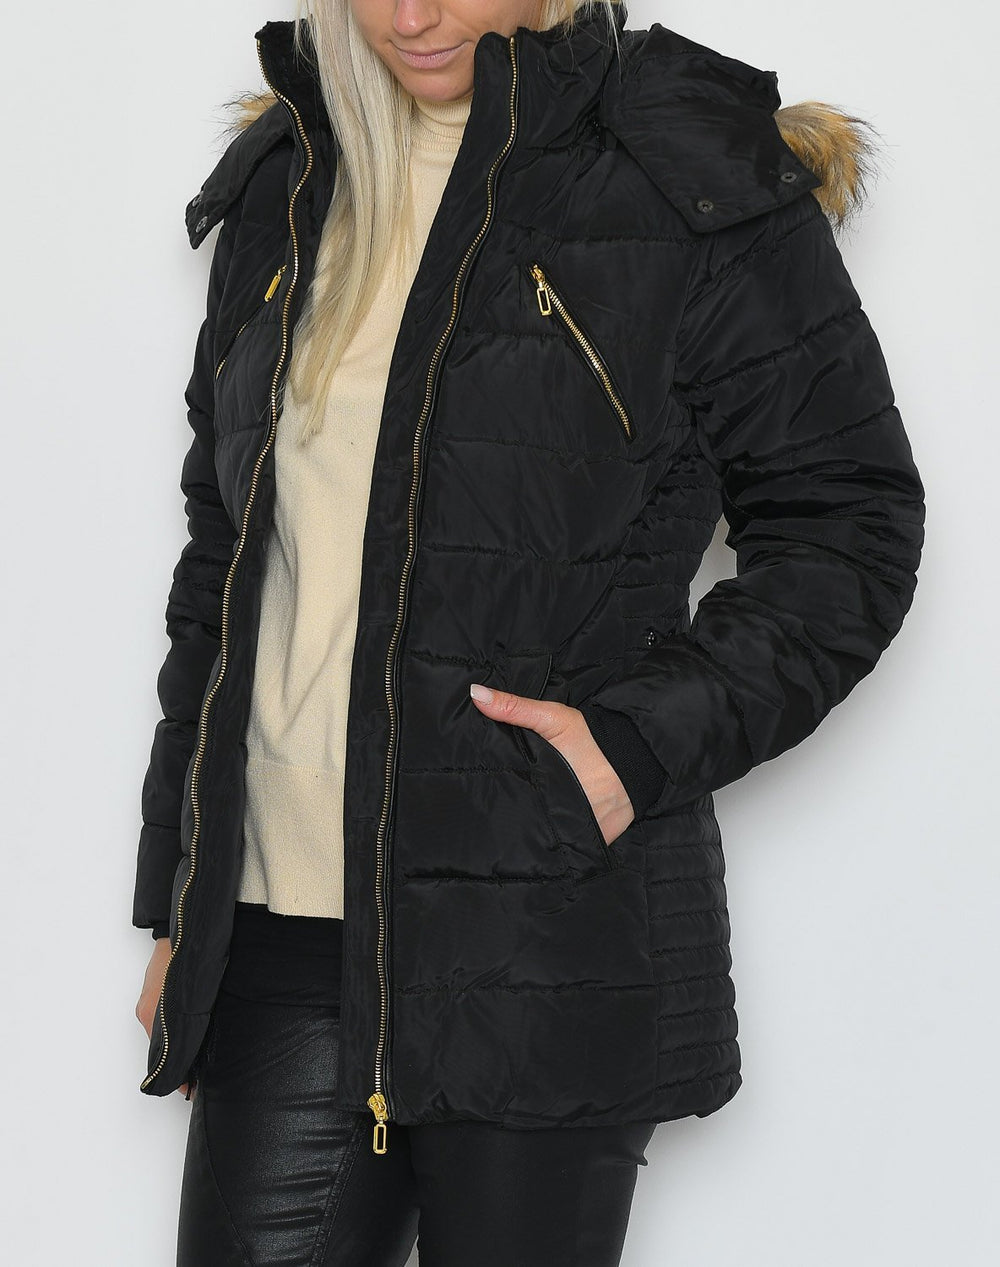 Ofelia Lone jacket black - Online-Mode